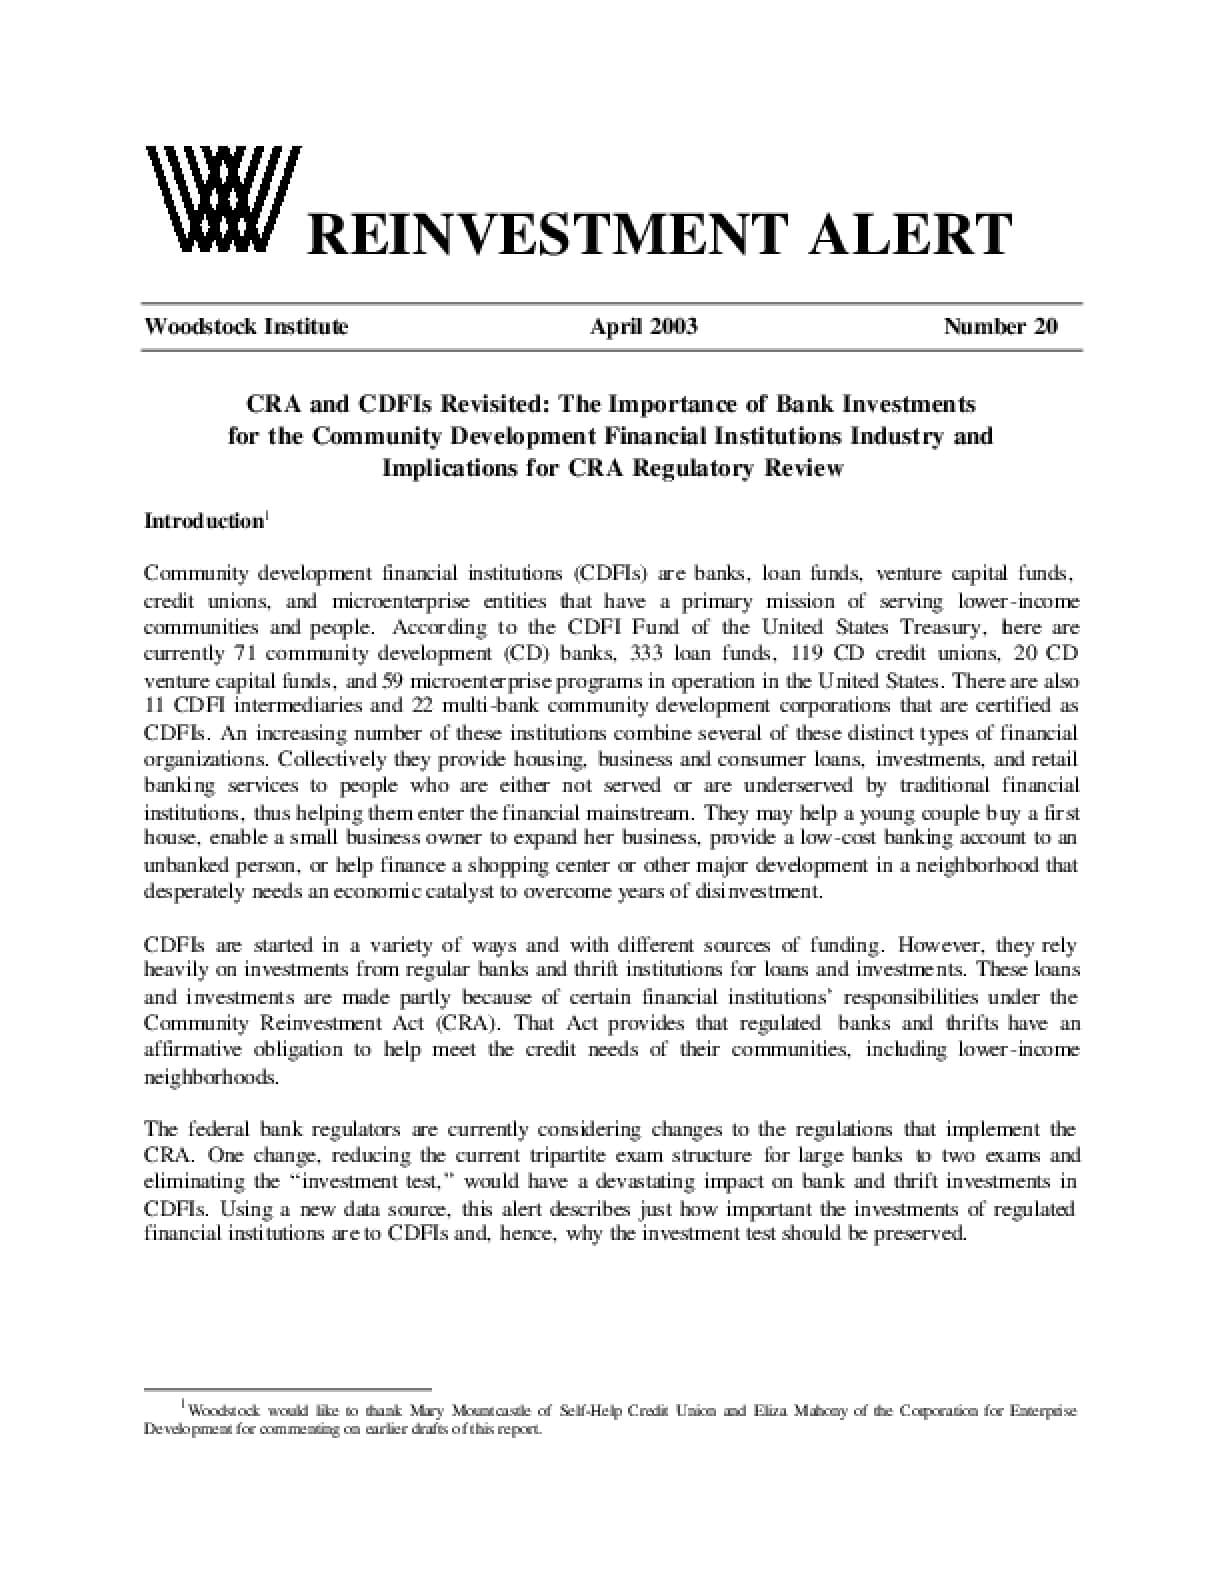 Reinvestment Alert 20: CRA and CDFIs Revisitied:The